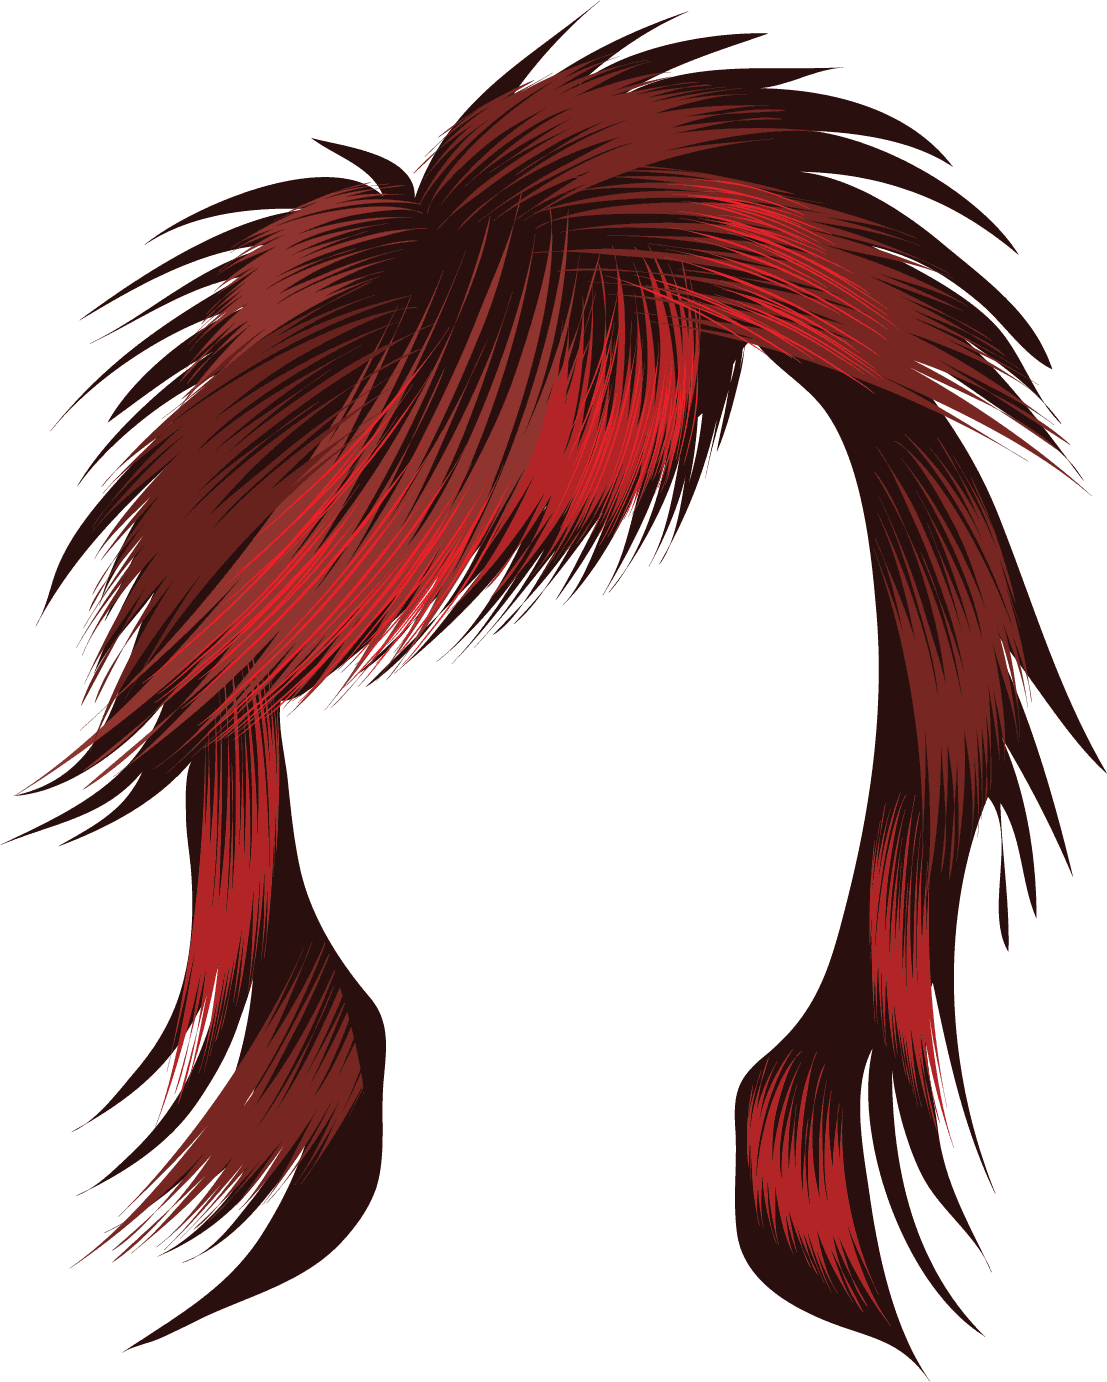 Clip Art Hair Borders | 30  Royalty free clip art borders free | Publishing | Pinterest | Clip art, Art and Hair